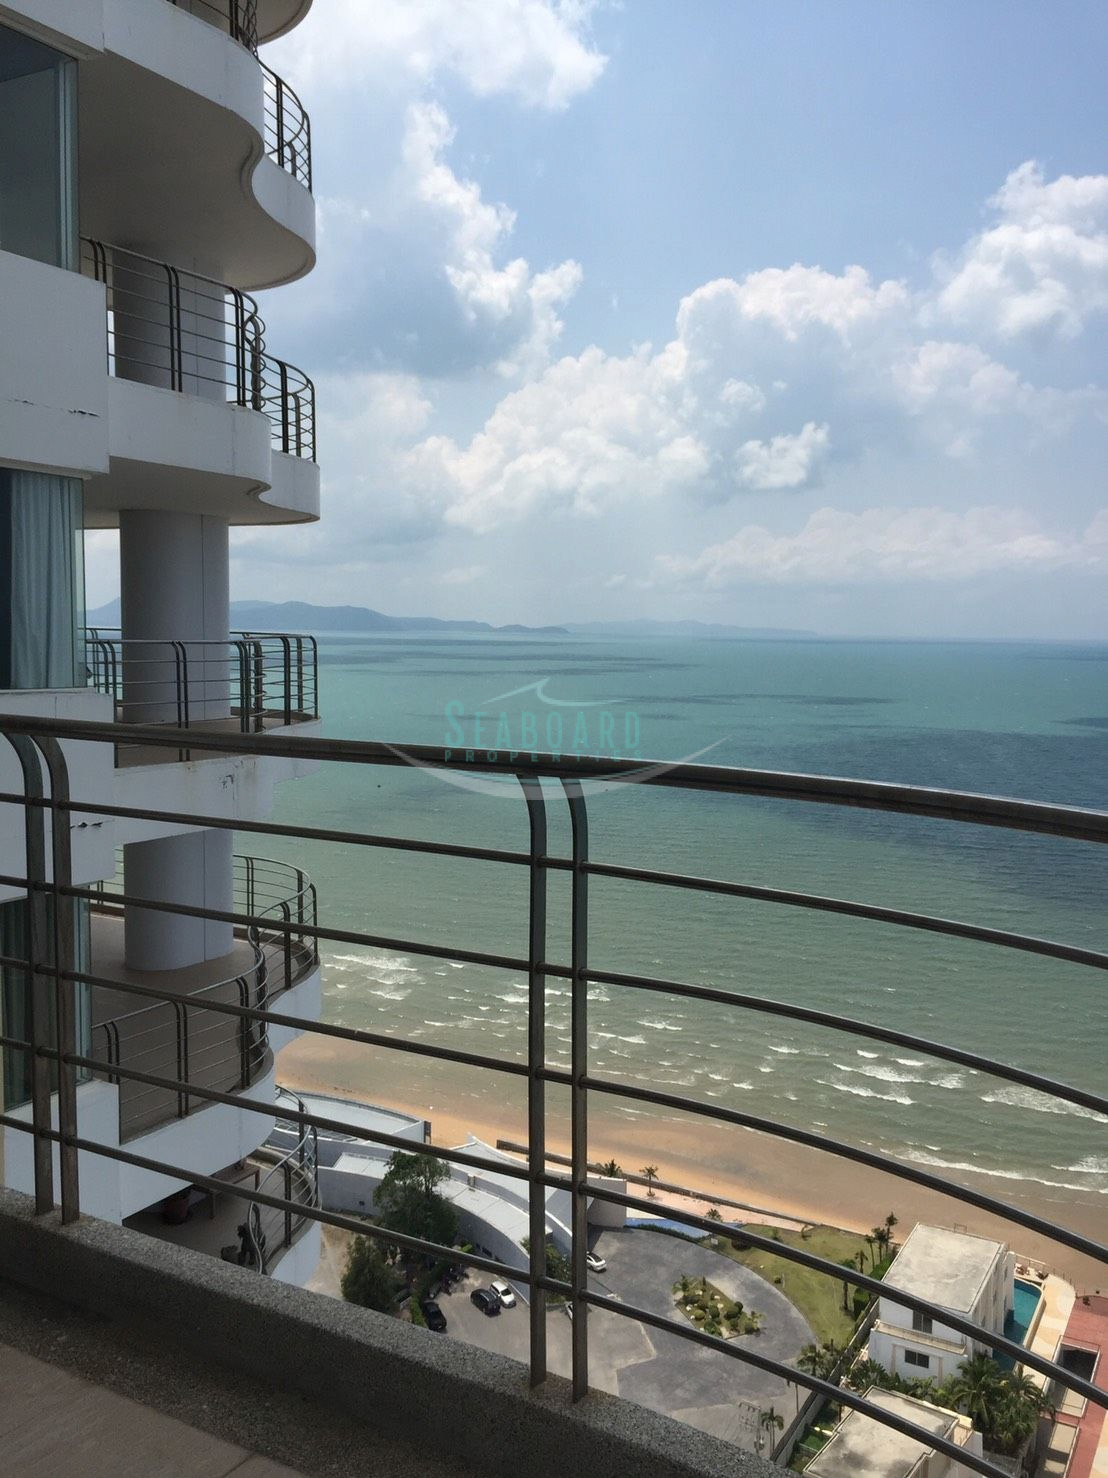 la royale beachfront condominium for rent in na jomtien til leie I Na Jomtien Pattaya